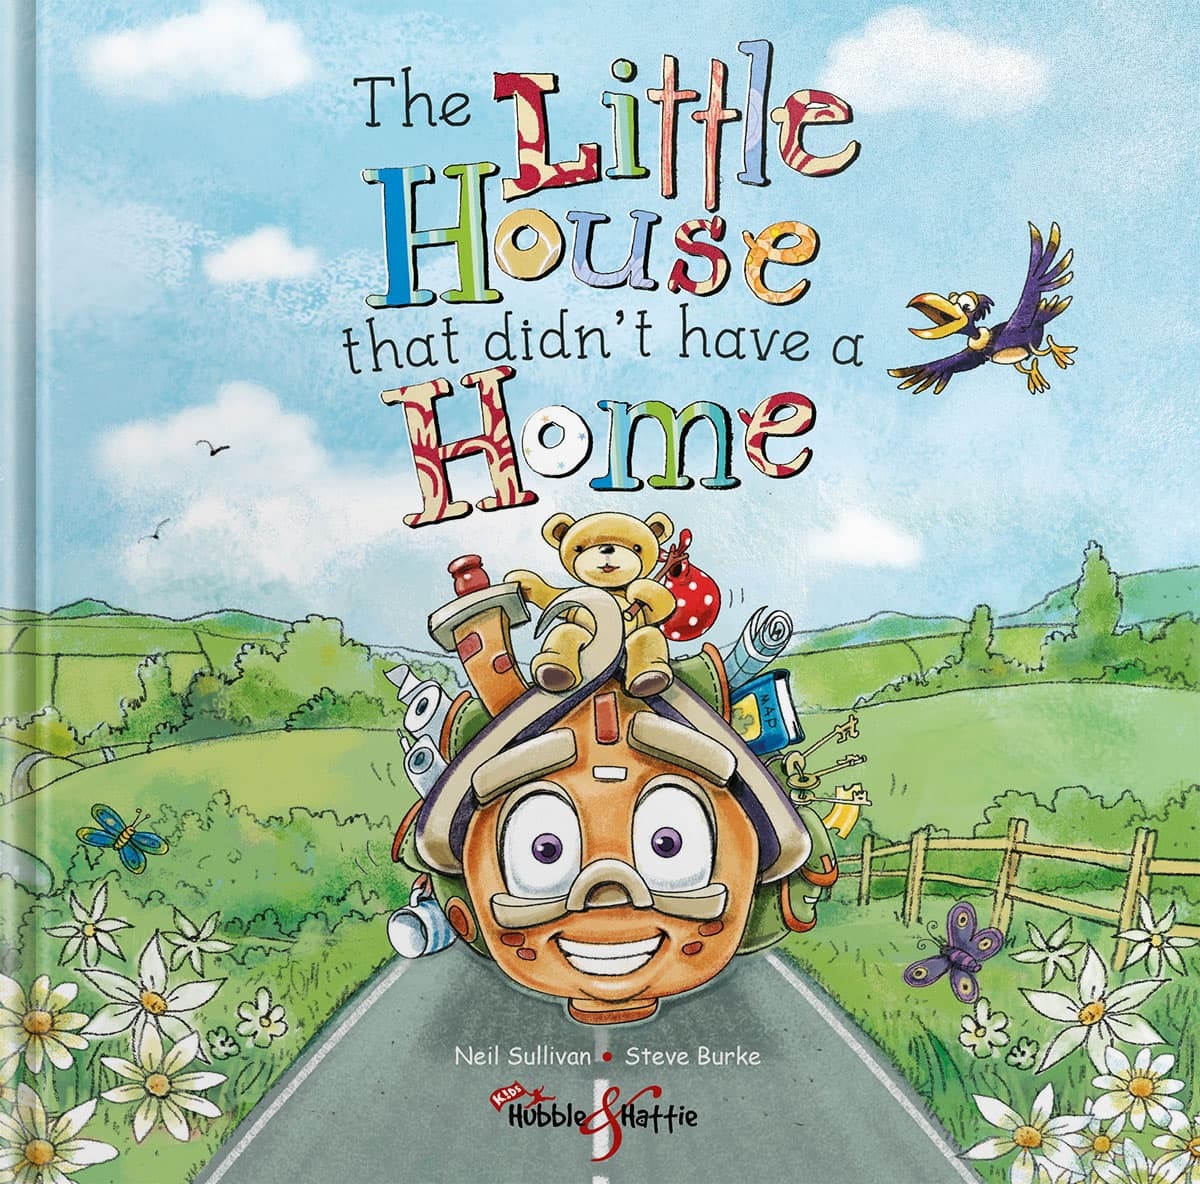 The Little House – that didn't have a home